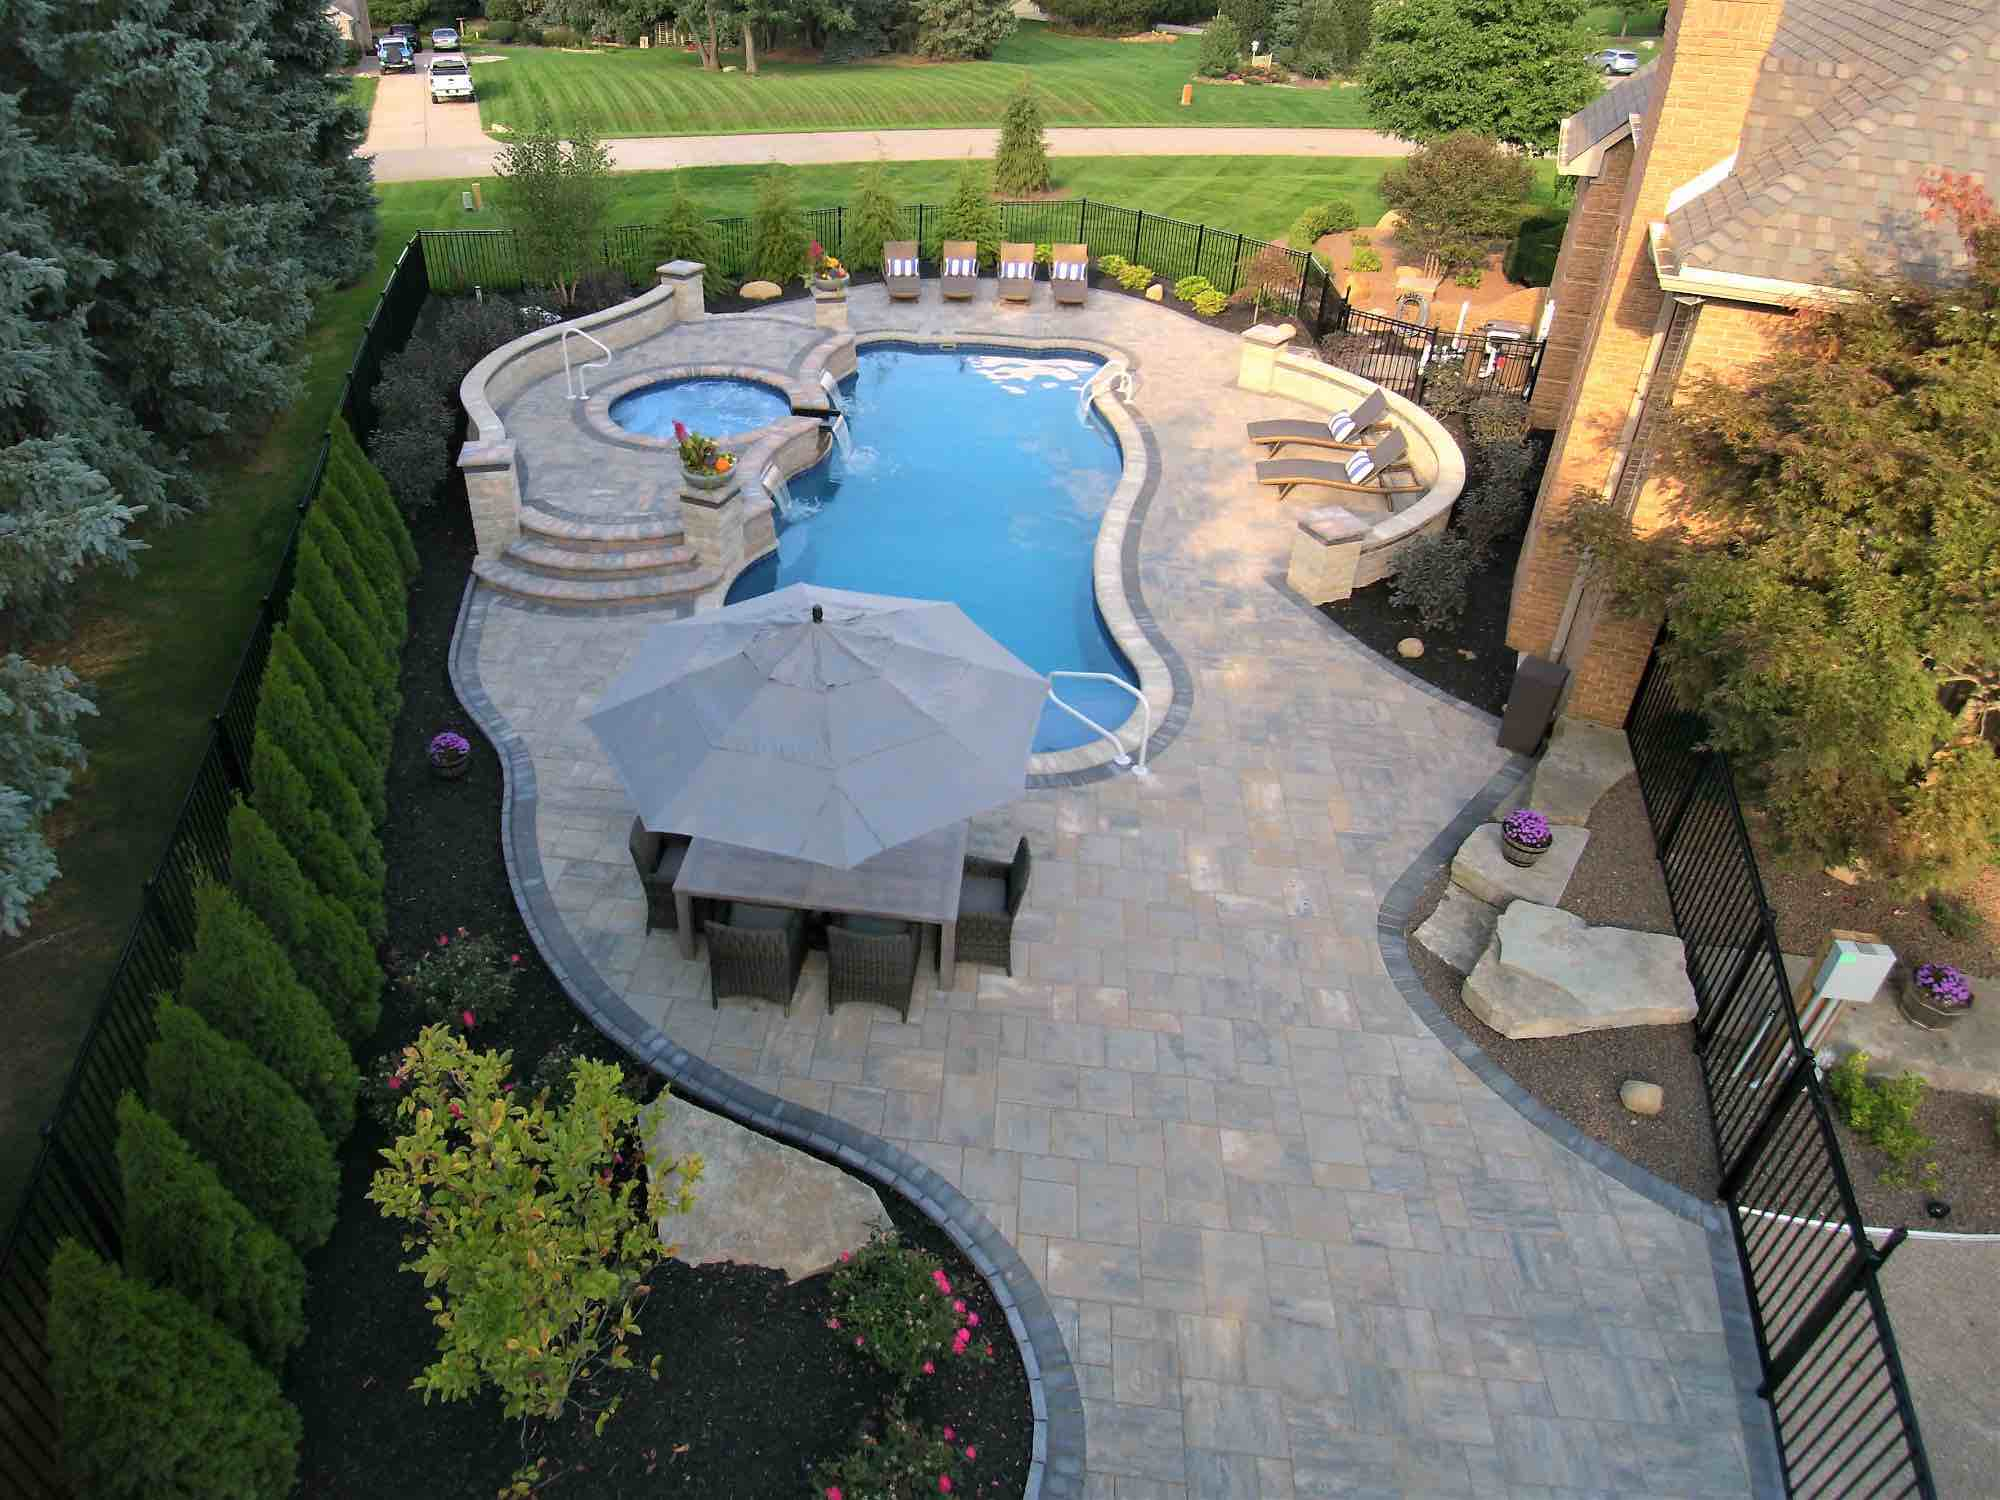 aerial view of pool with a spillover hot tub